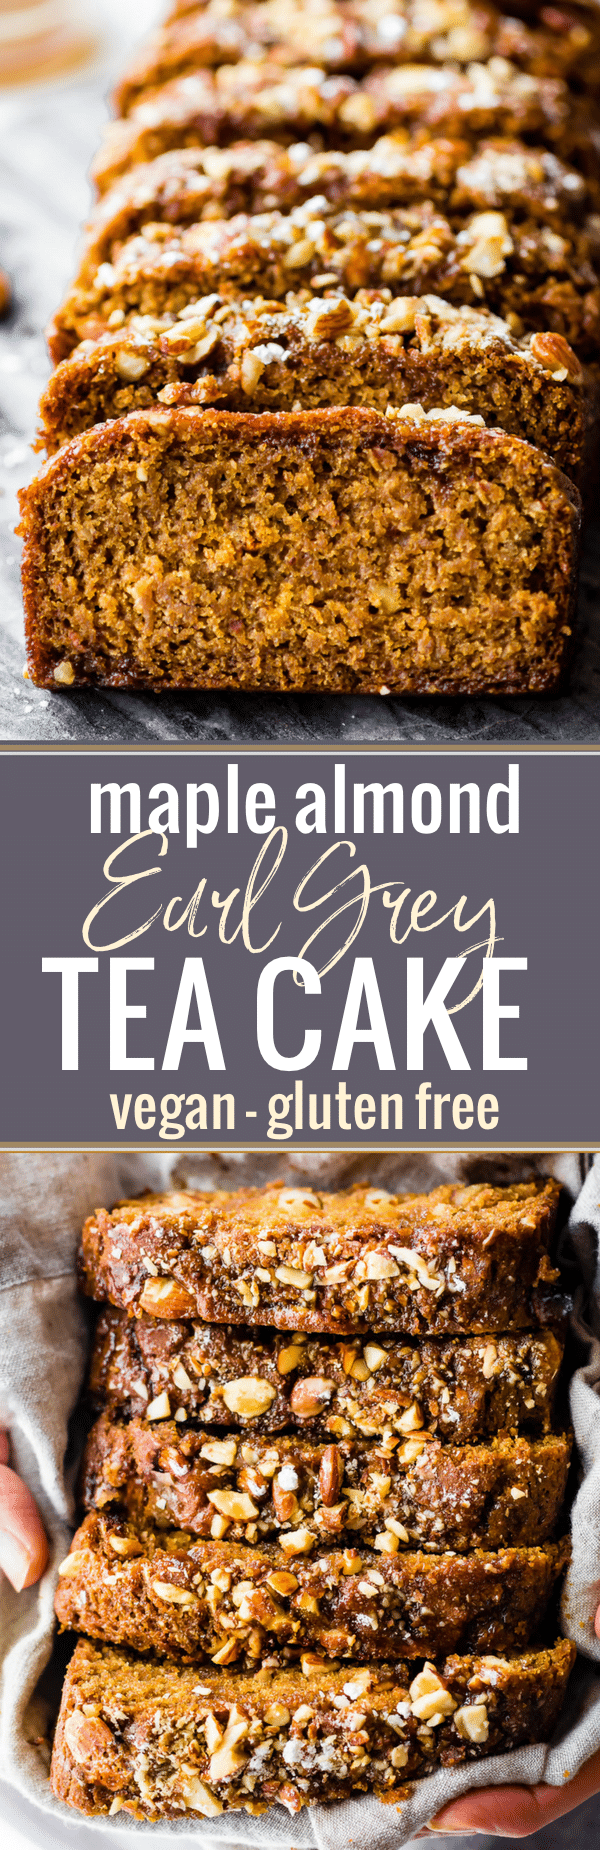 This Vegan Maple Almond Earl Grey Tea cake is lightly sweet and simple. A gluten free buttery tea cake loaf infused with Earl Grey tea and a hint cardamon! The maple almond glaze is the perfect topping. Quick to make in one pan and bakes up in under 45 minutes! www.cottercrunch.com